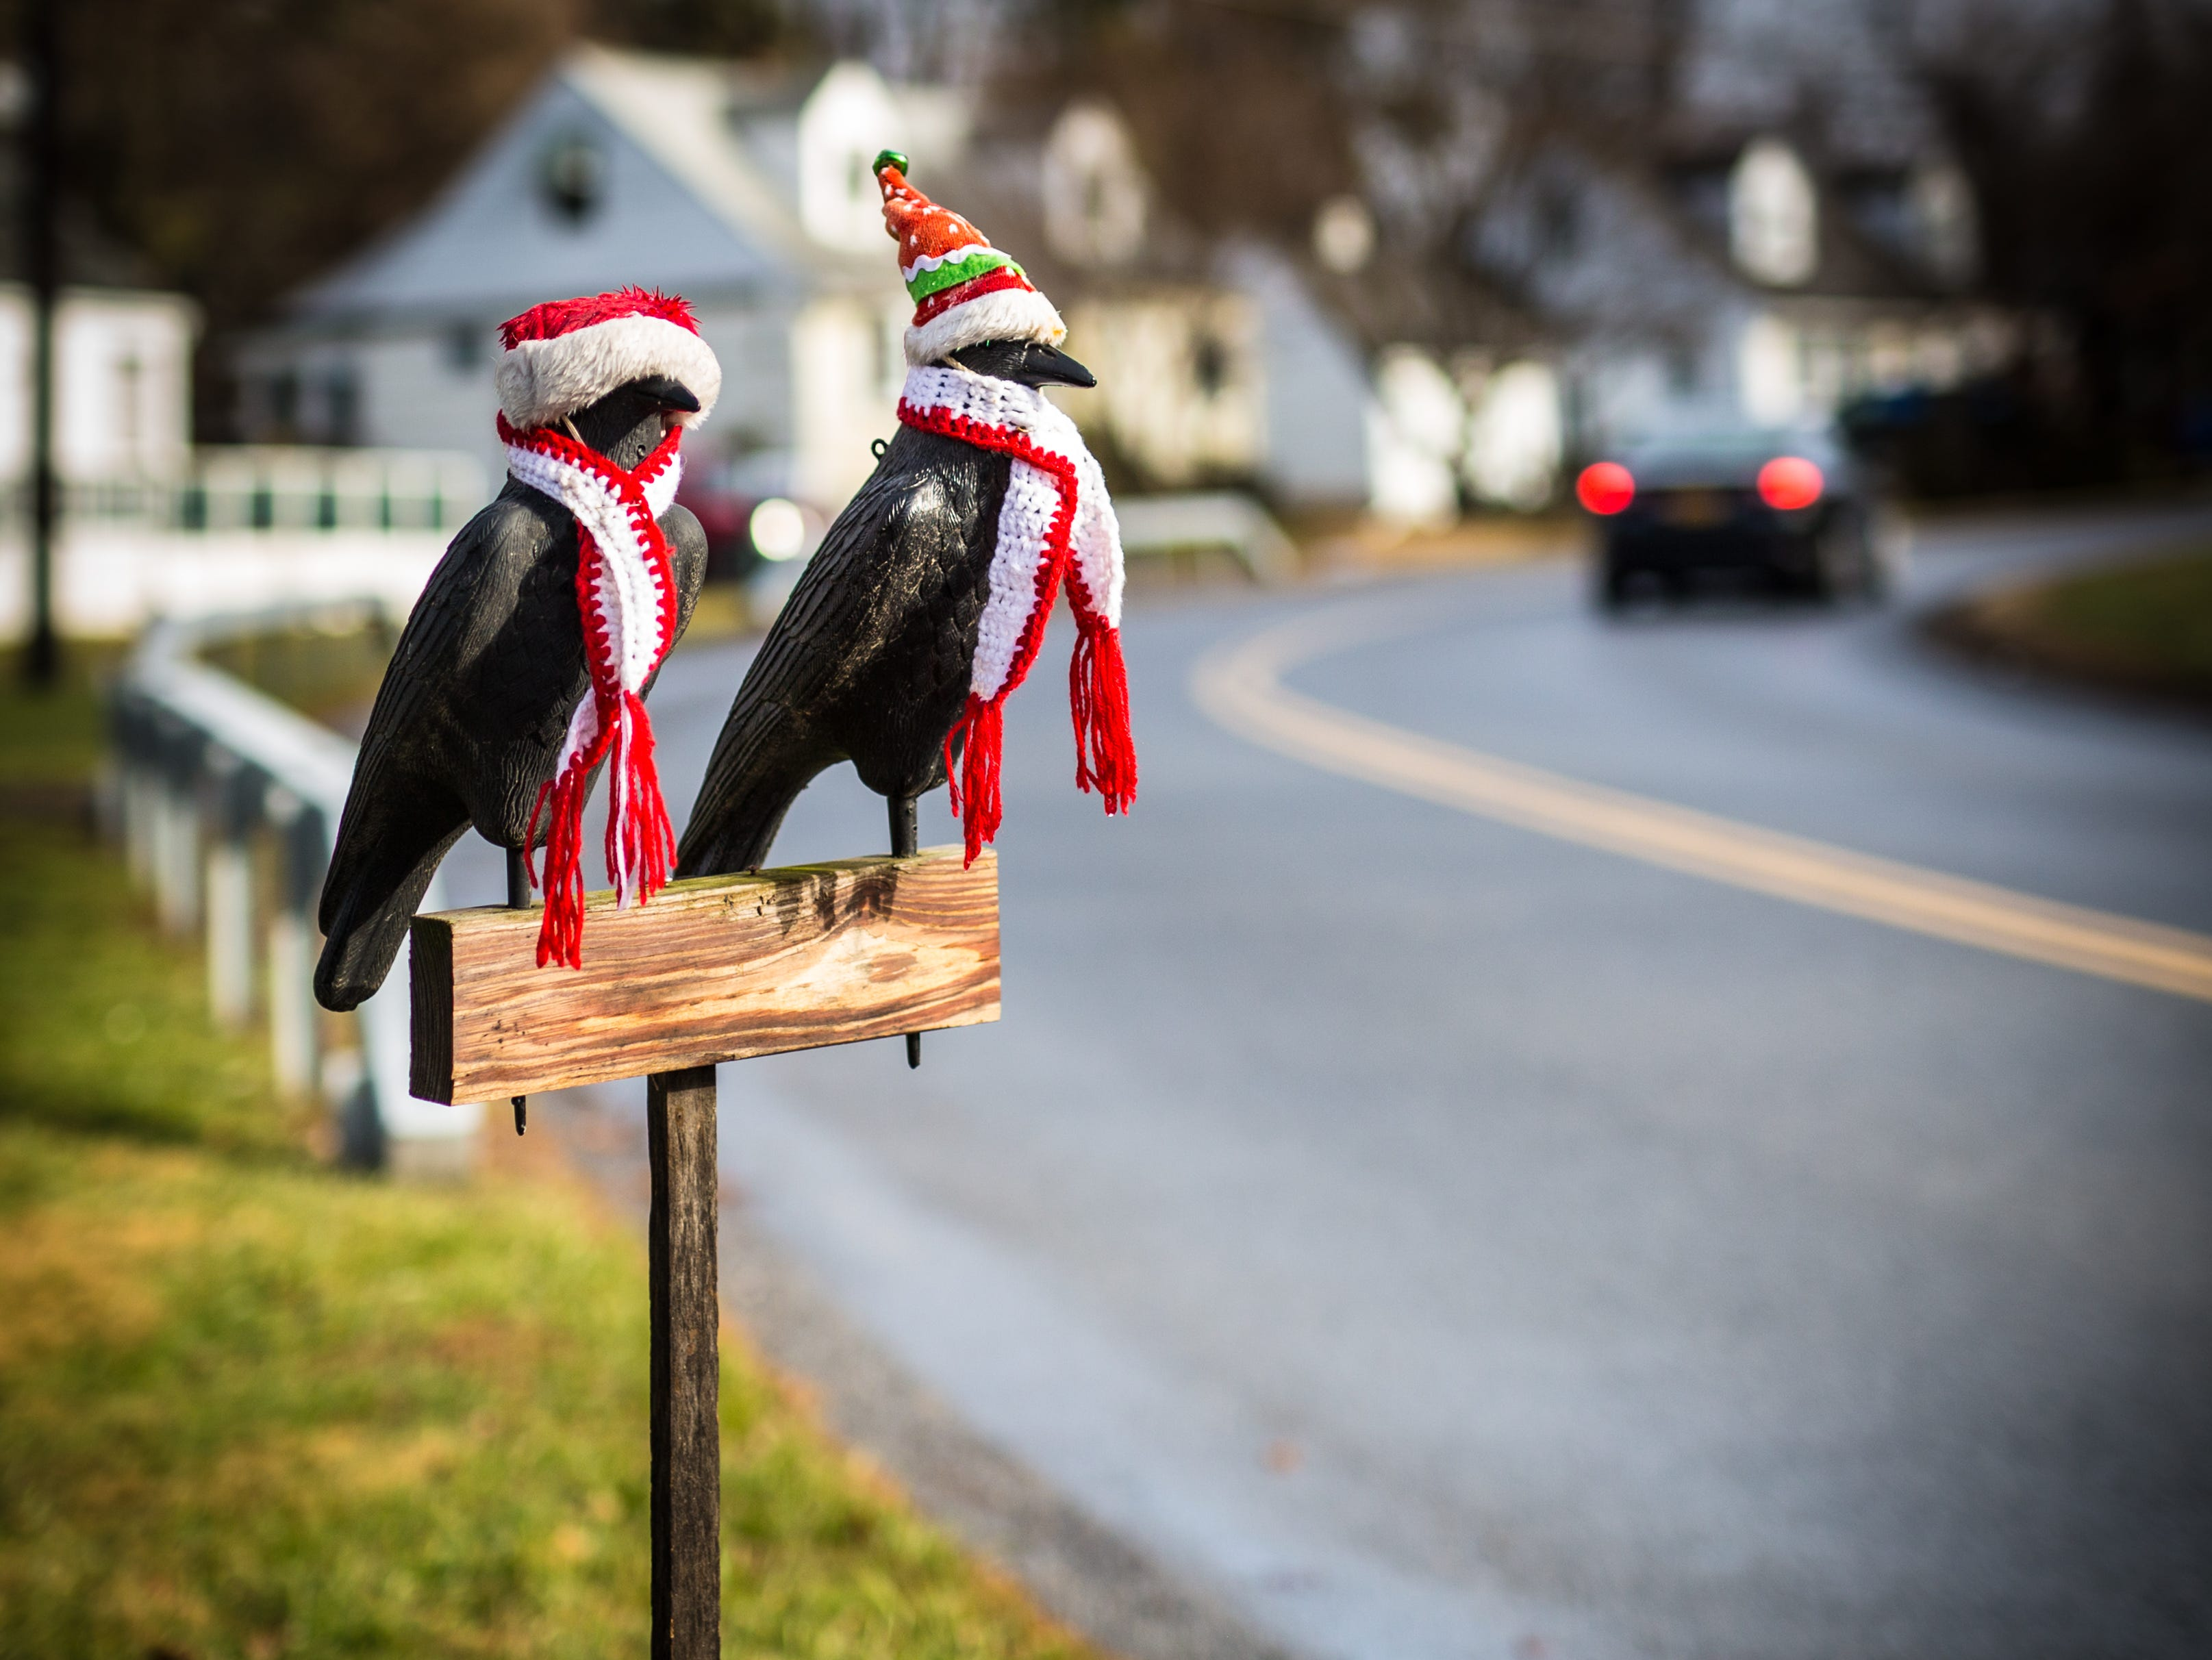 Love these two #guardian #crows that watch over the street #onmywaytpwork everyday. They went away for a while and are finally back and more #stylin than ever. #thankstowhoeverdoesthis